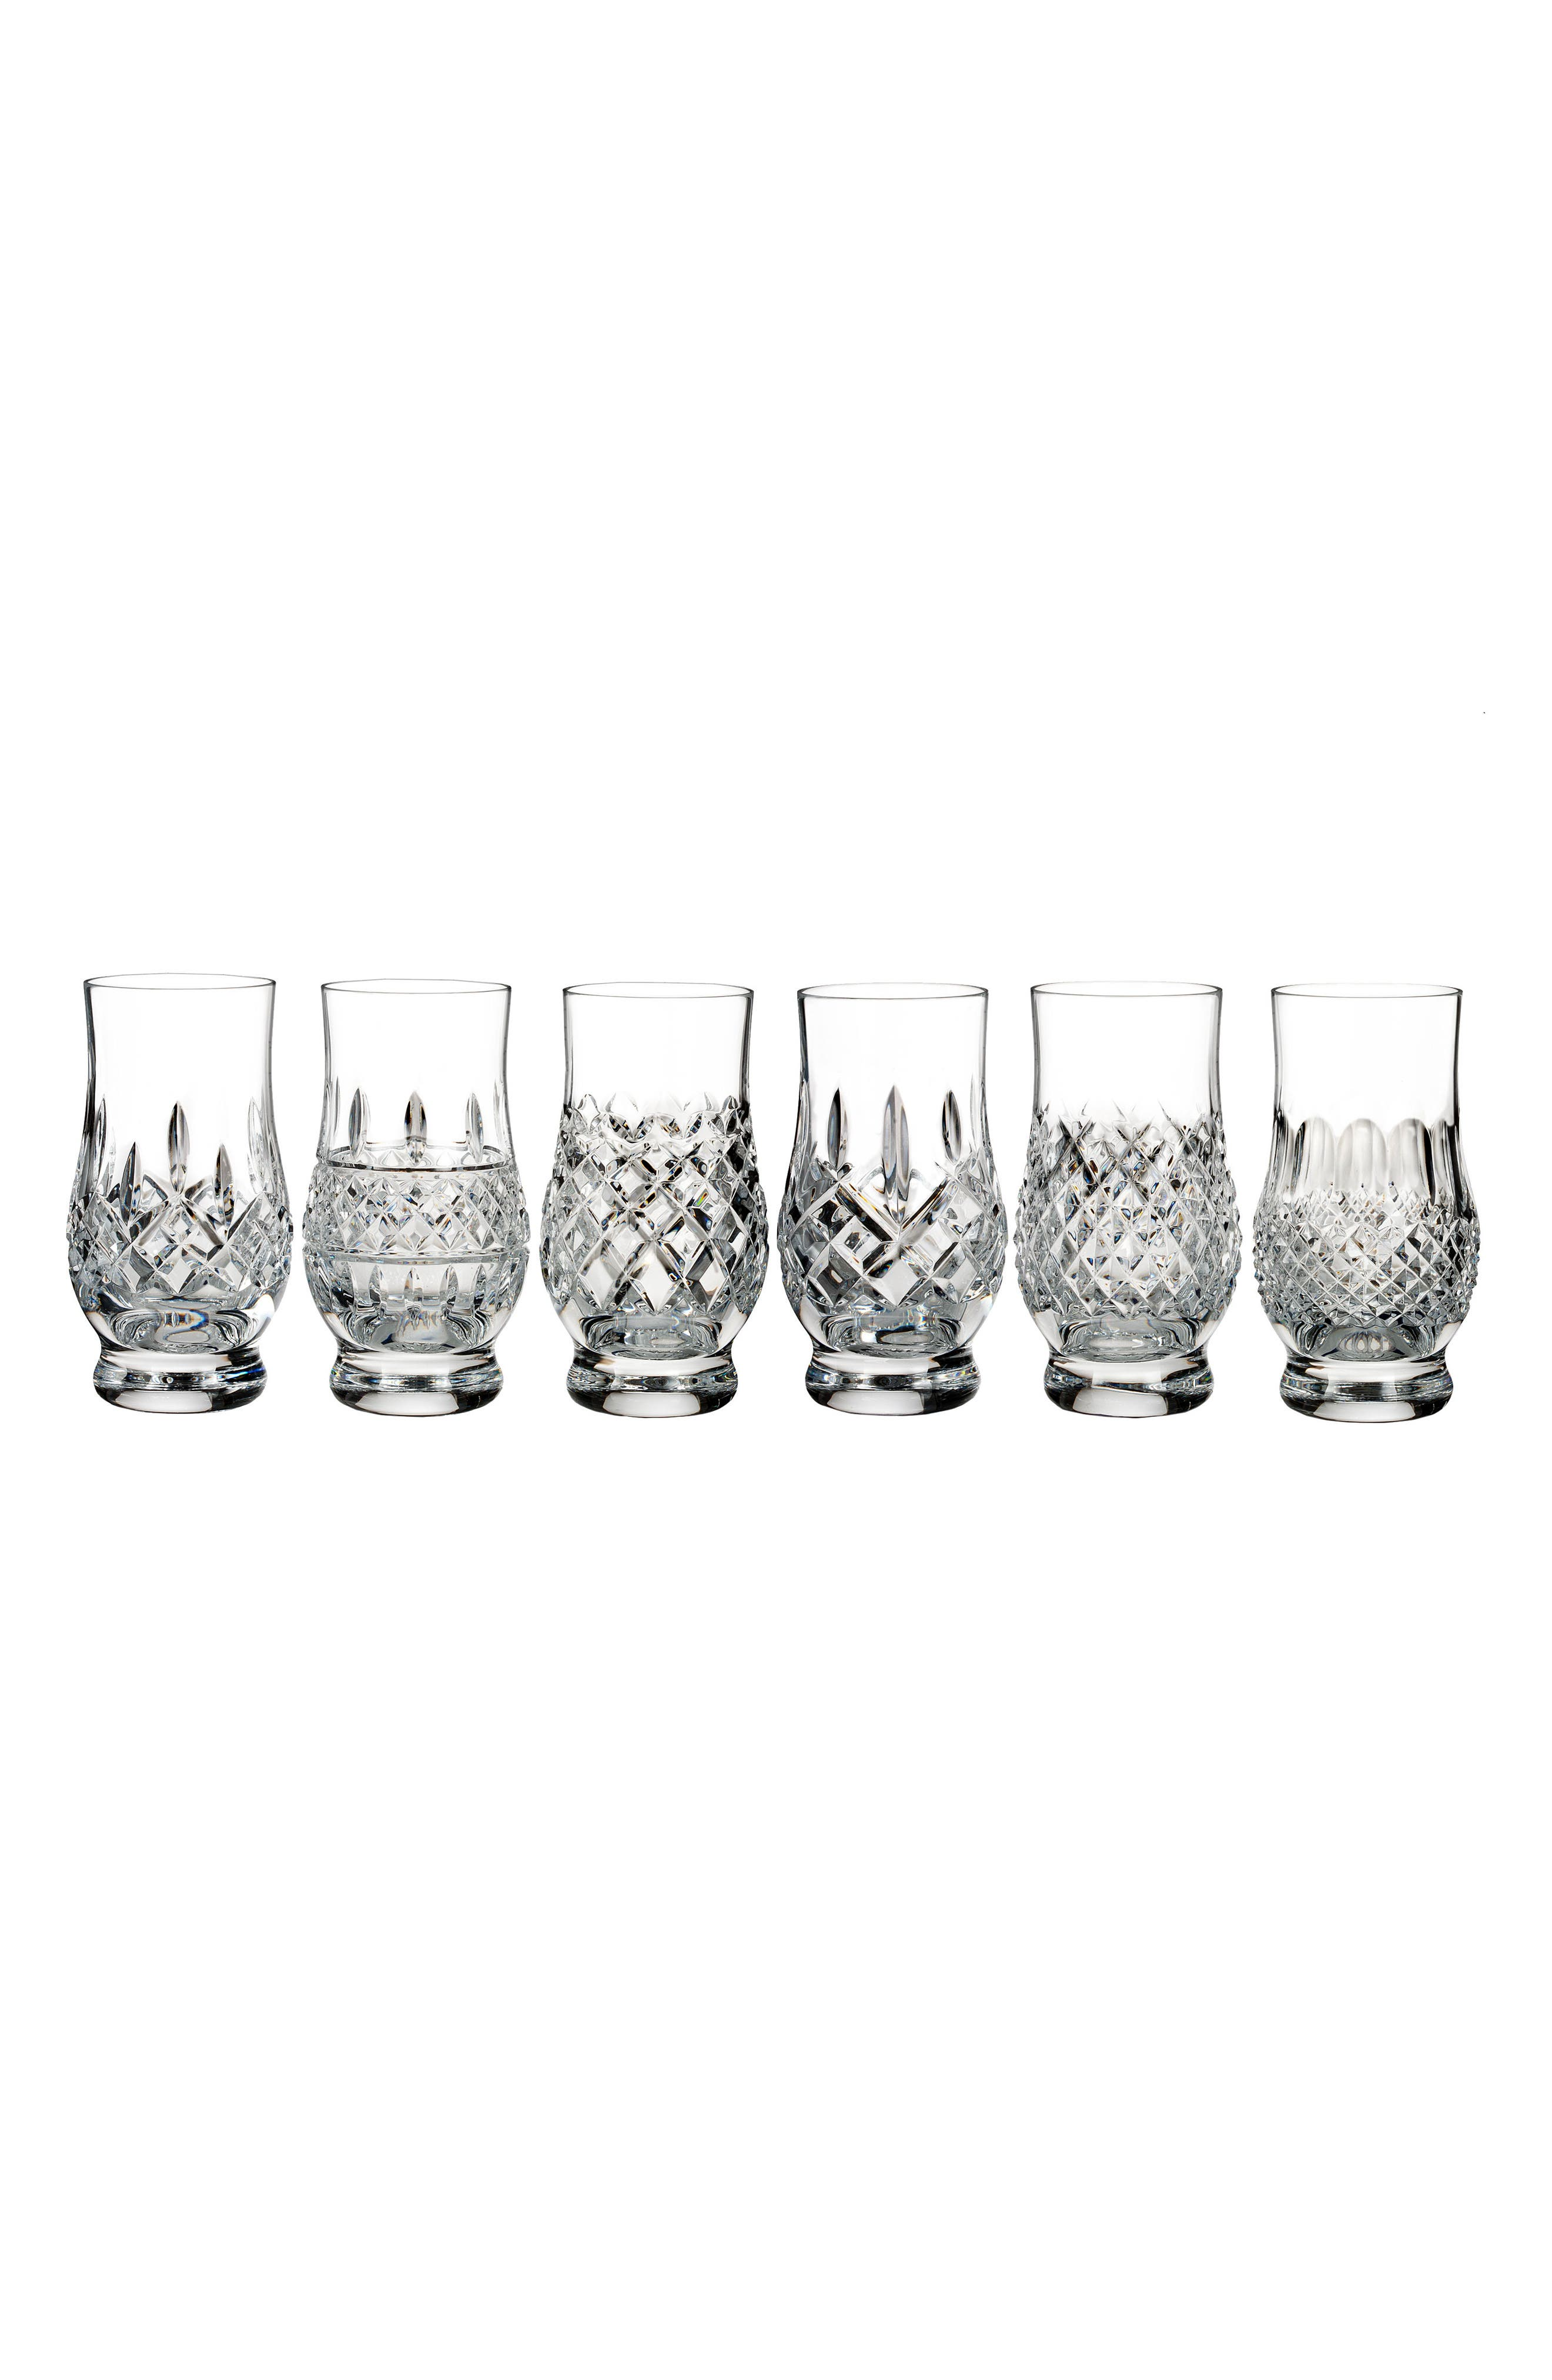 Alternate Image 1 Selected - Waterford Connoisseur Set of 6 Footed Lead Crystal Tumblers